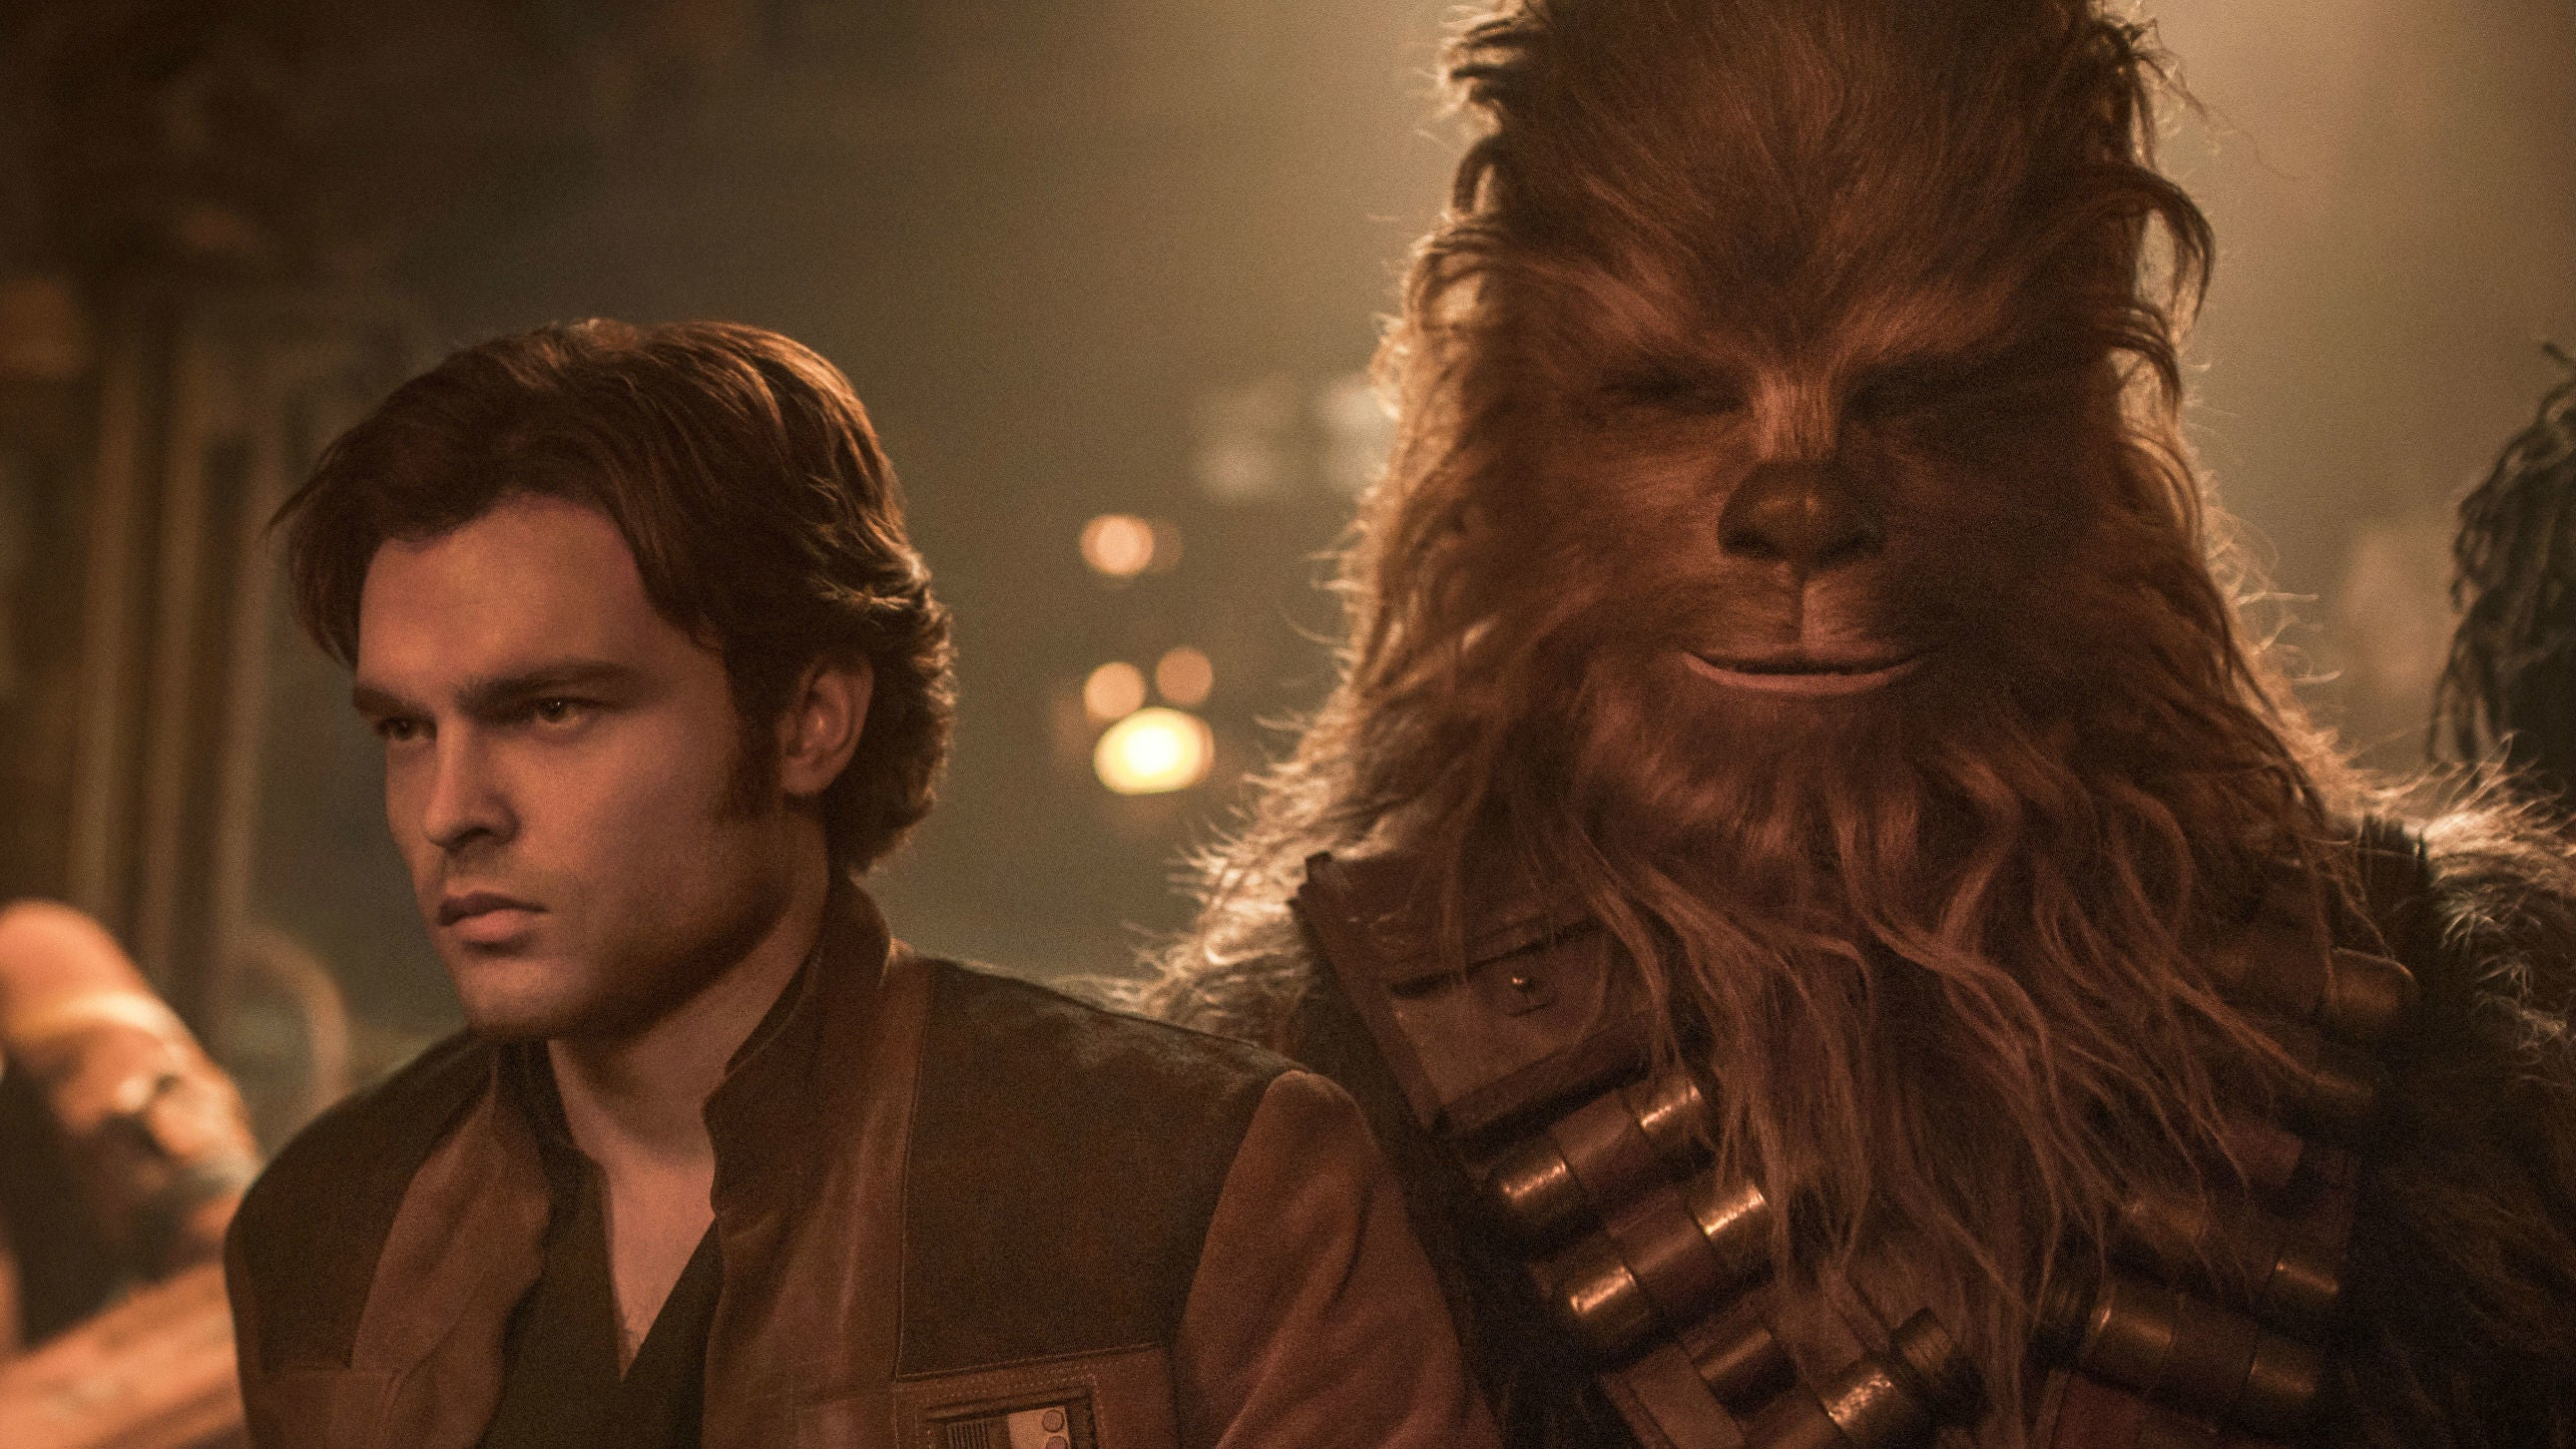 The Writers Of SoloDiscuss The Challenge Of Creating Han And Chewie's Iconic First Meeting